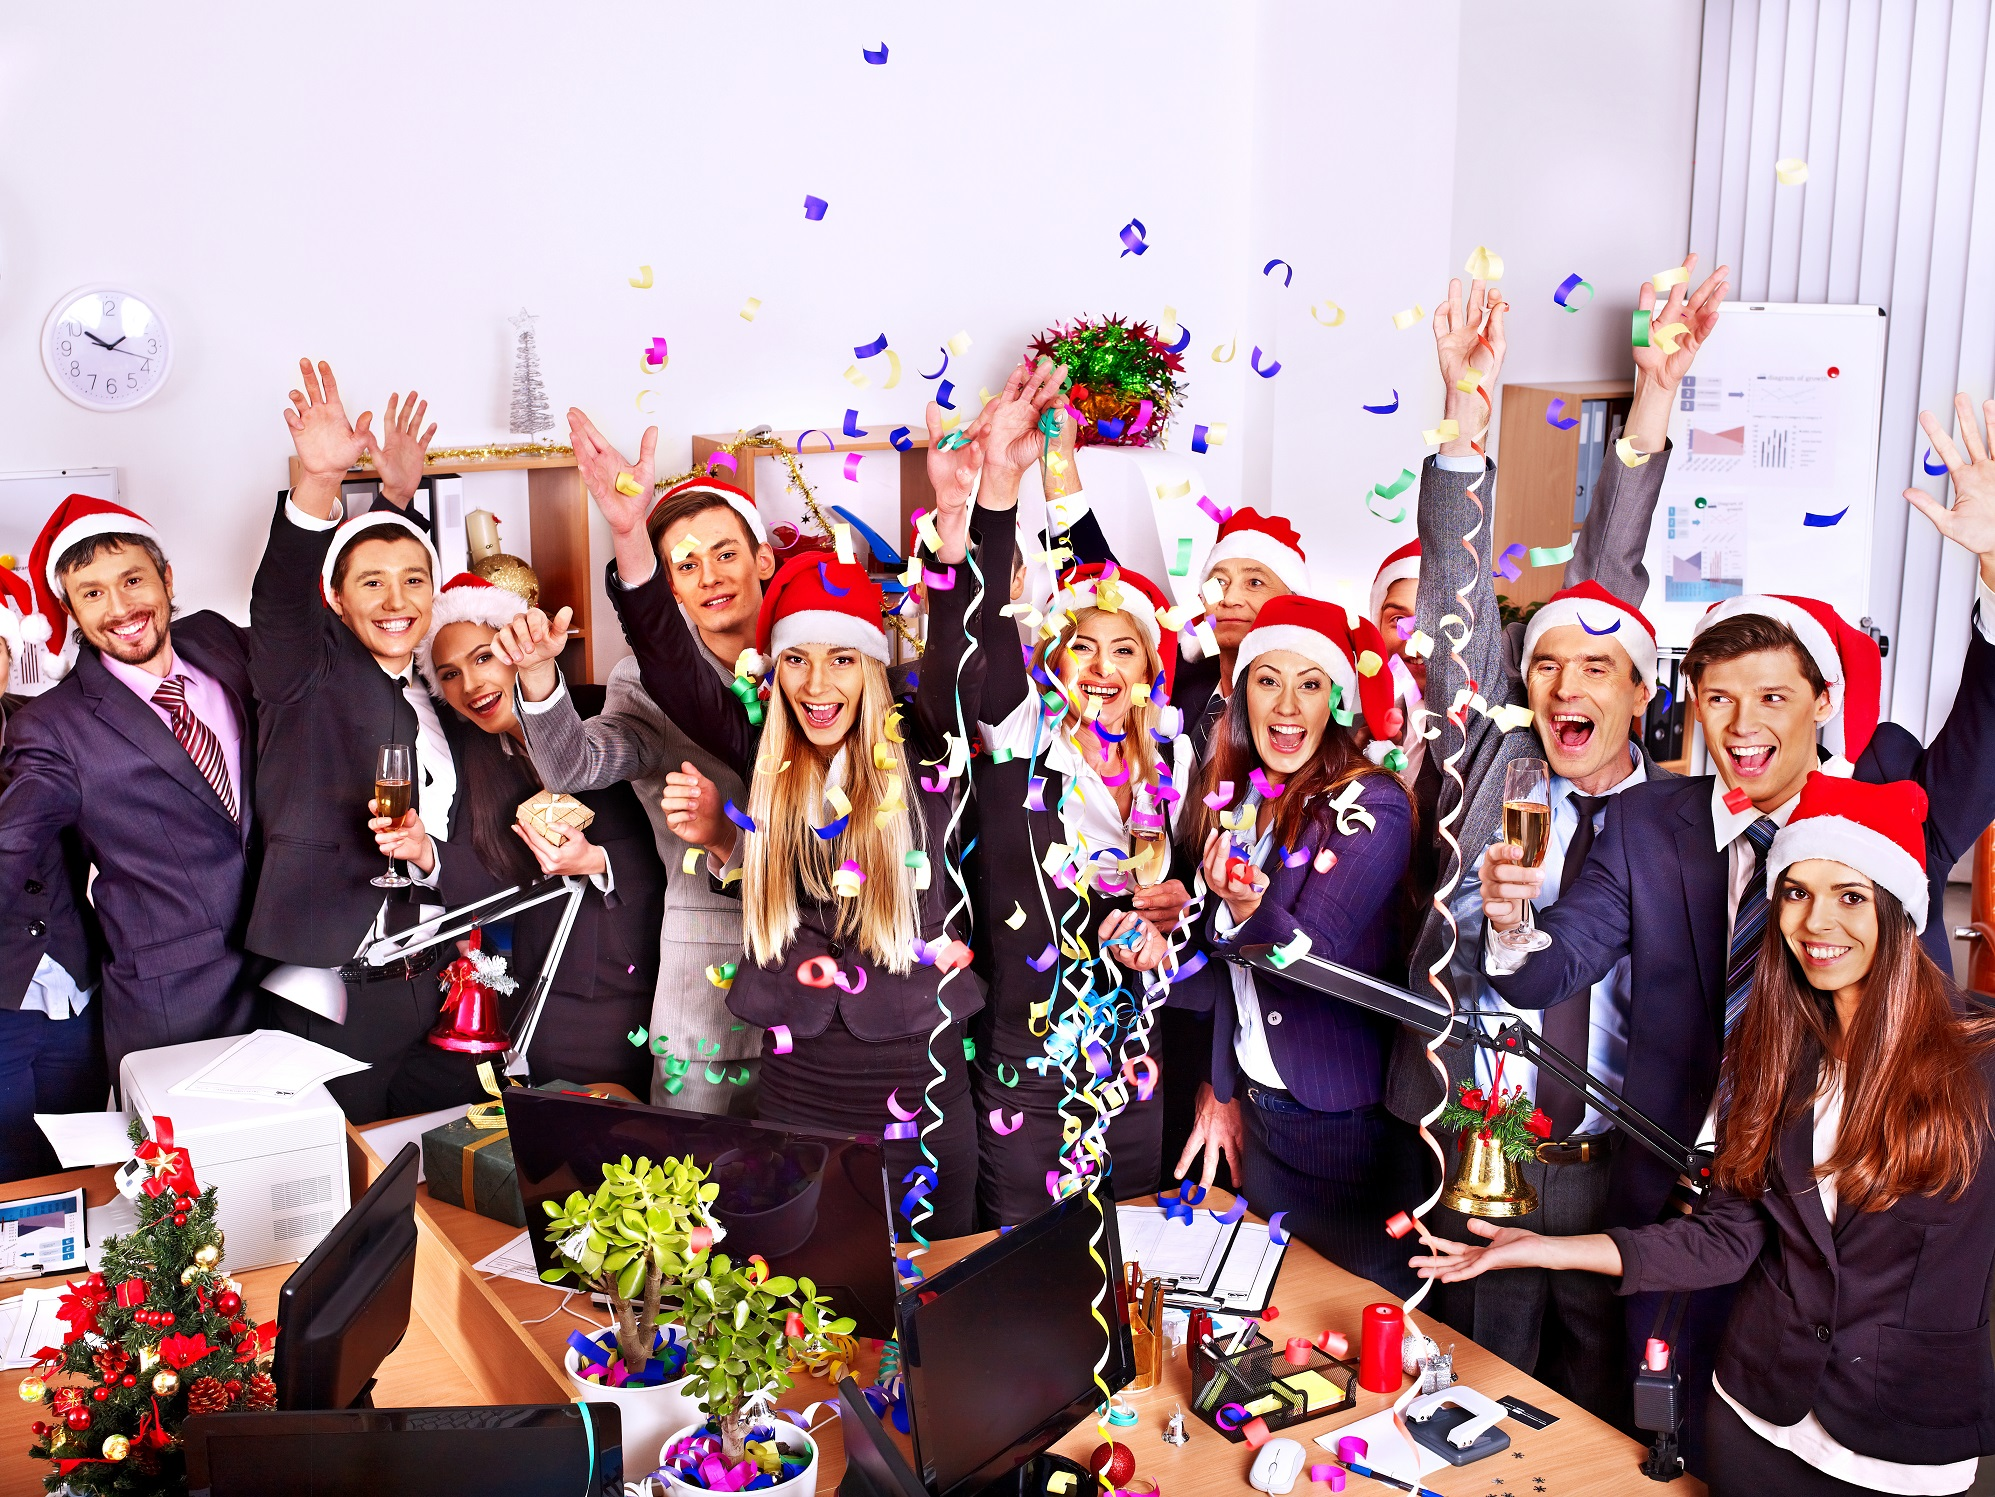 precautions for a holiday office party york investment corp 7 precautions for a holiday office party